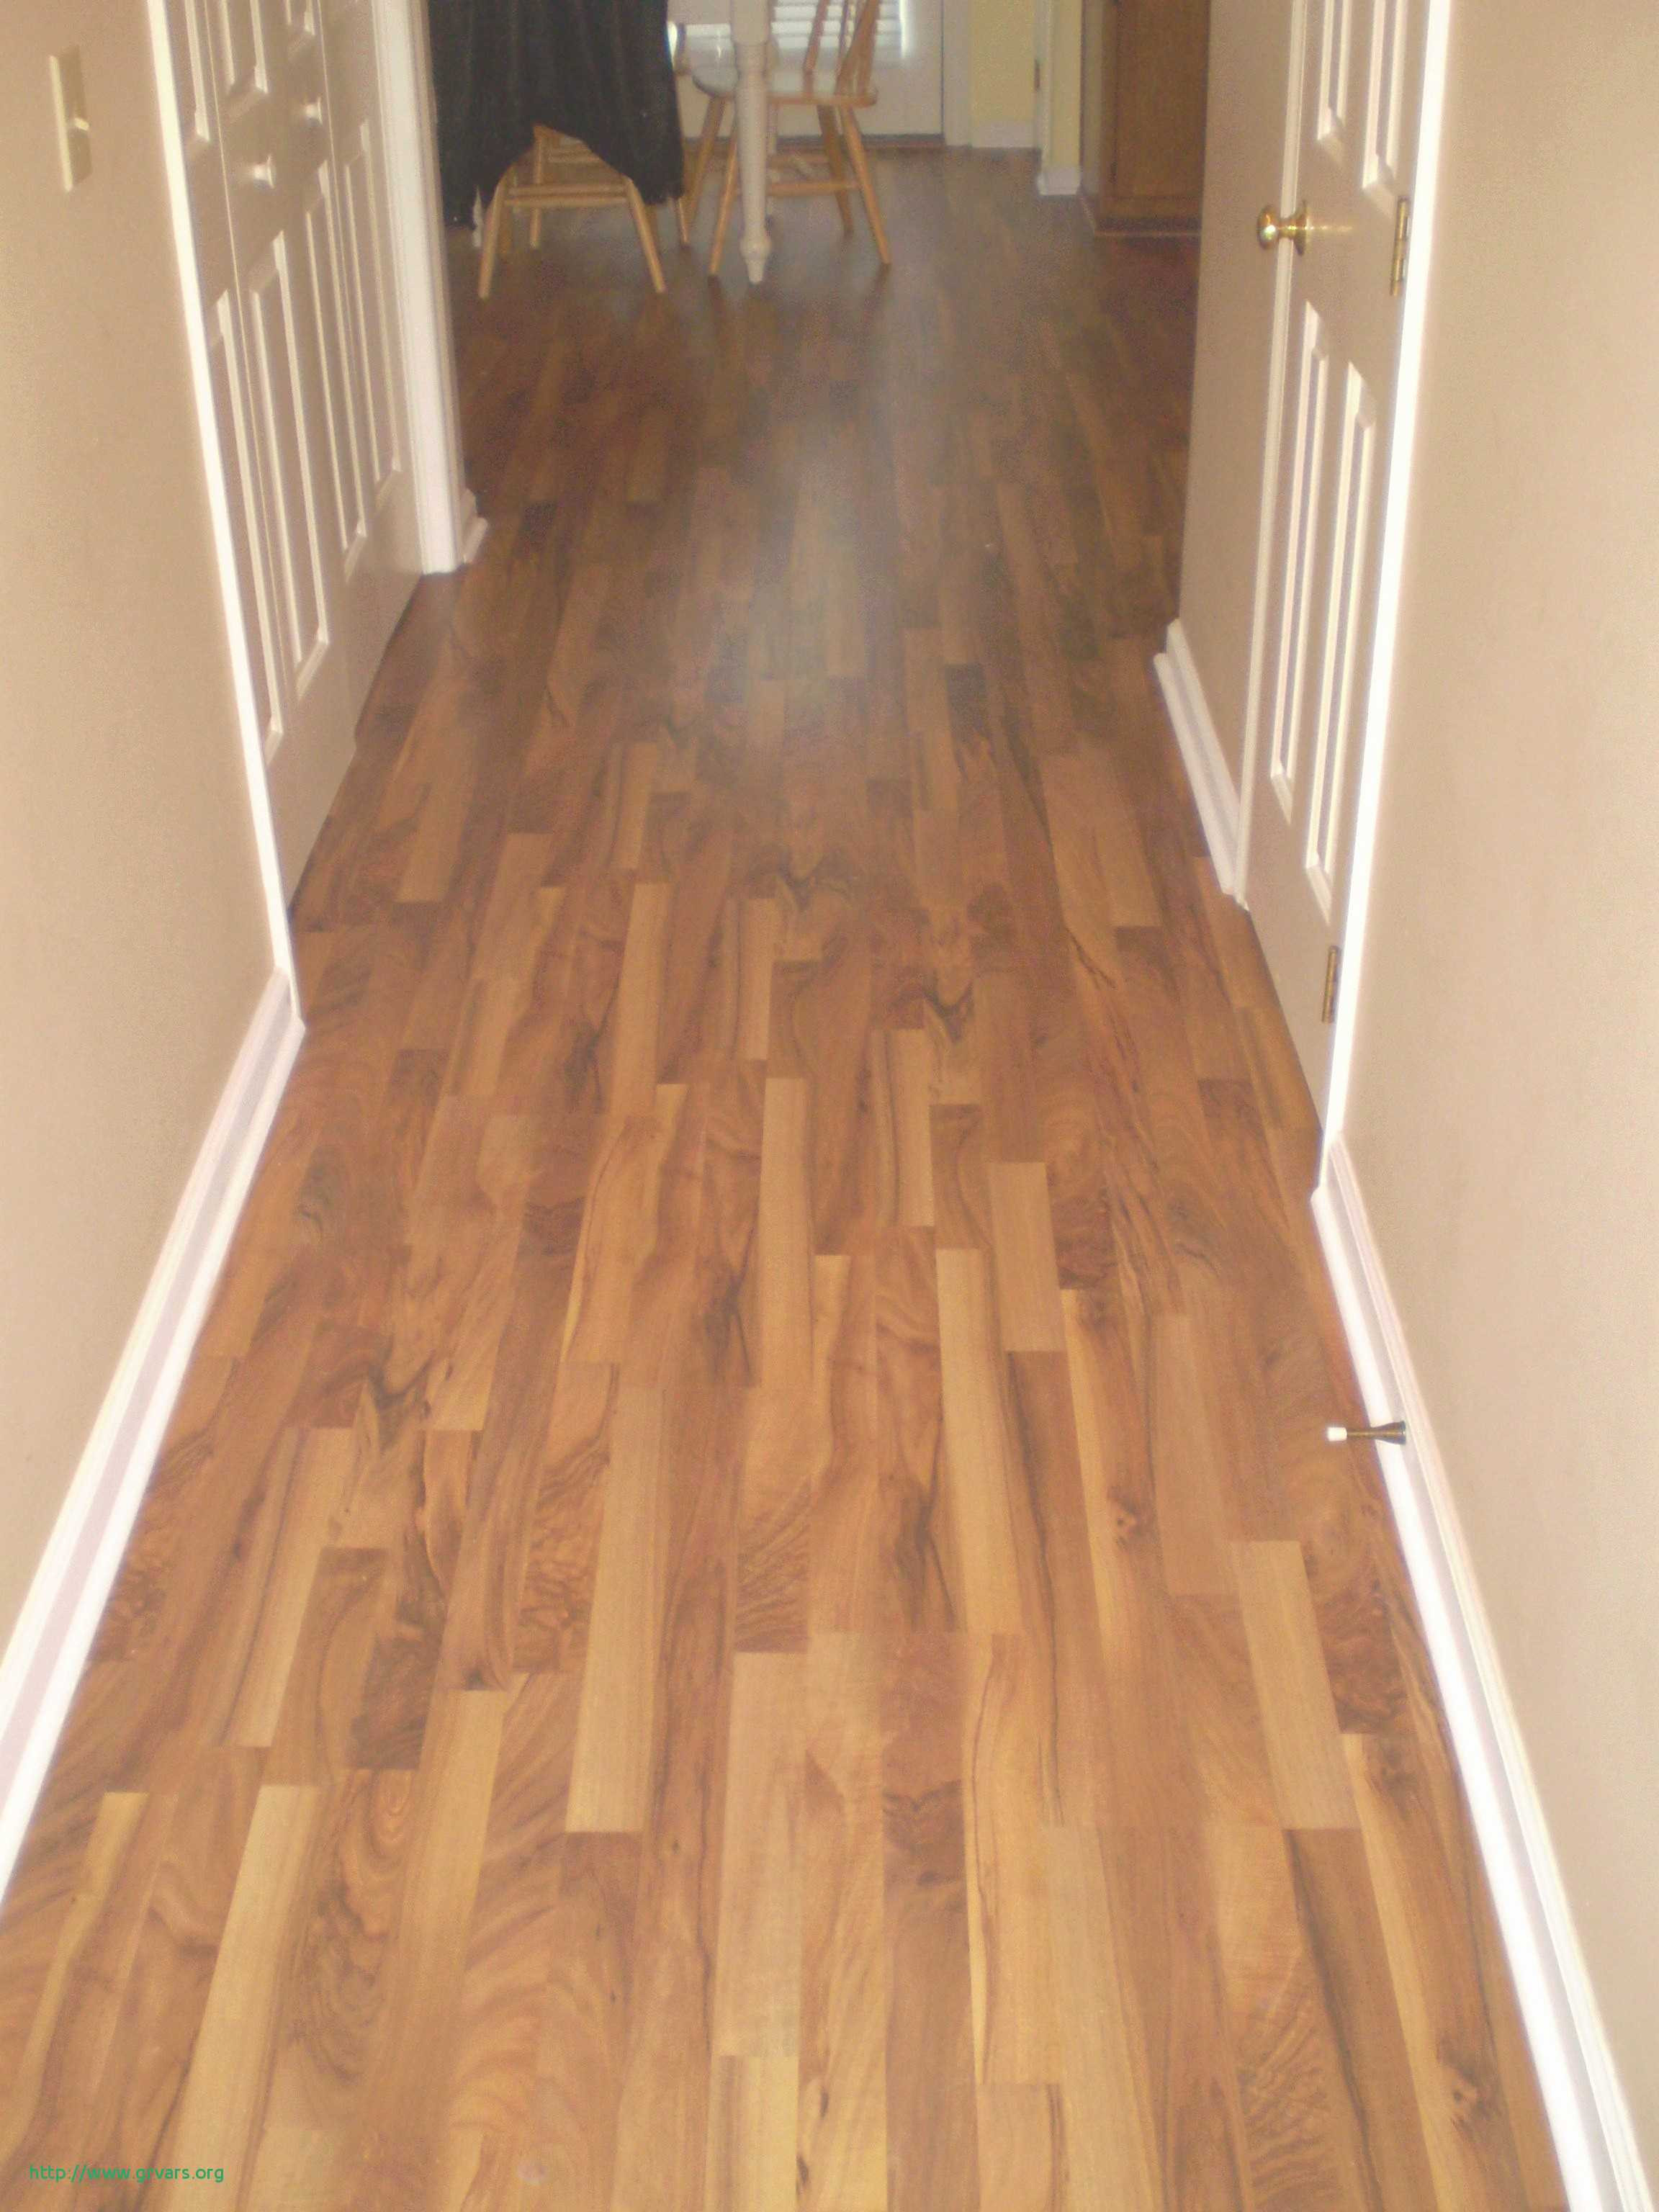 cleaning engineered hardwood floors steam mop of 22 charmant can you use a steam mop on hardwood floors ideas blog throughout clean rugs over wood can you use a steam mop on hardwood floors nouveau 18 luxury laminate vs engineered hardwood